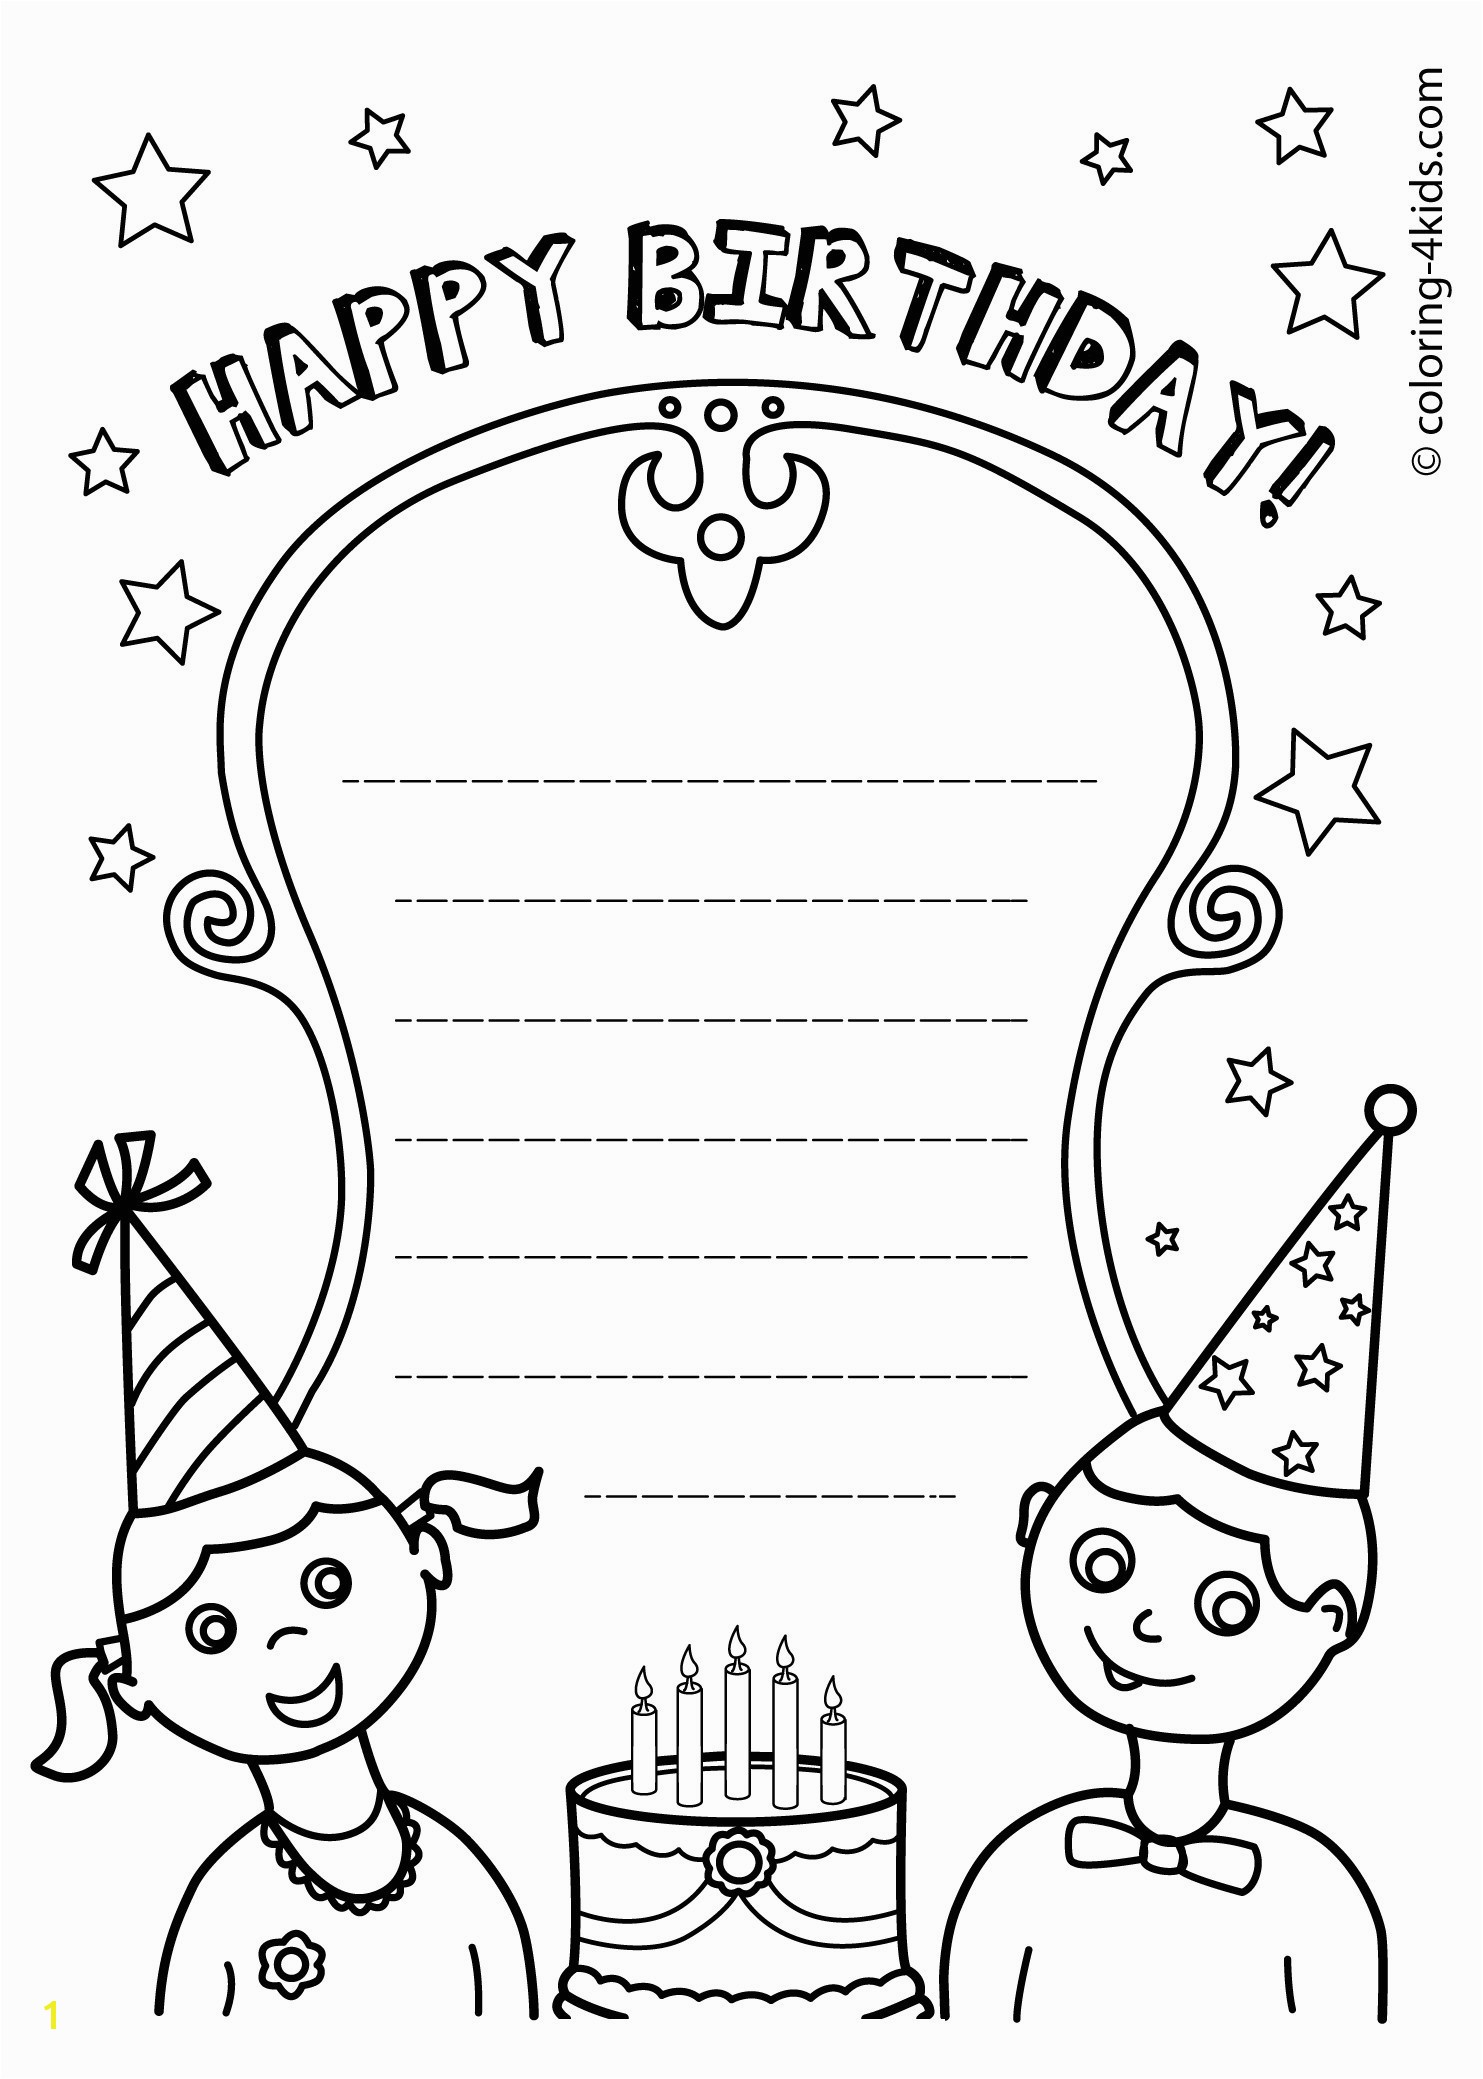 Carbon Cycle Coloring Page Inspirational Happy Birthday Pages For Kids Luxury graph